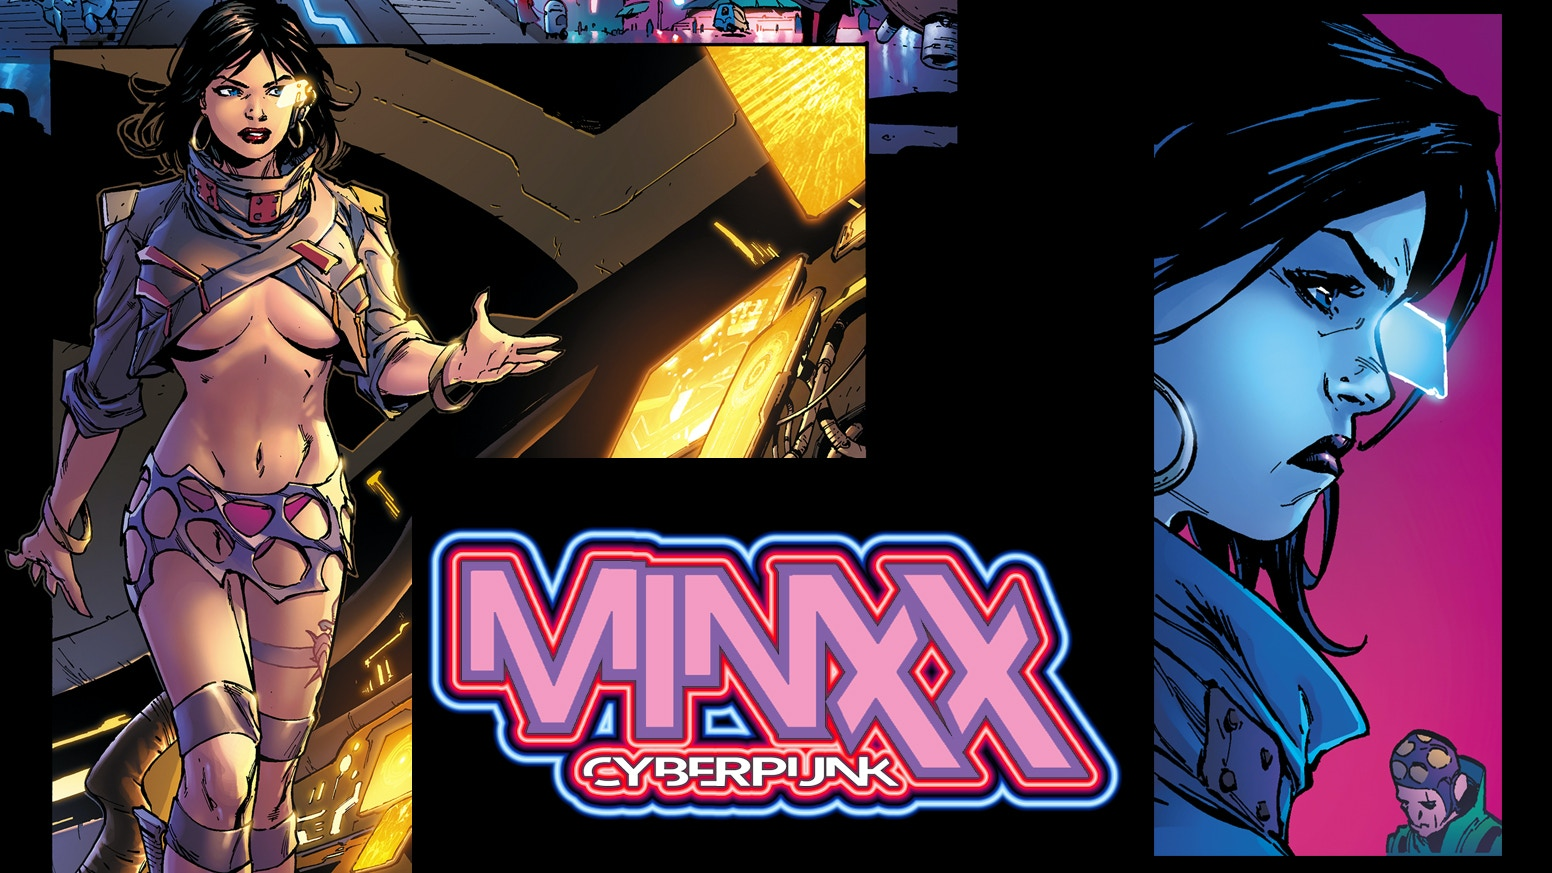 Minxx is a brand new, action-packed cyberpunk adventure